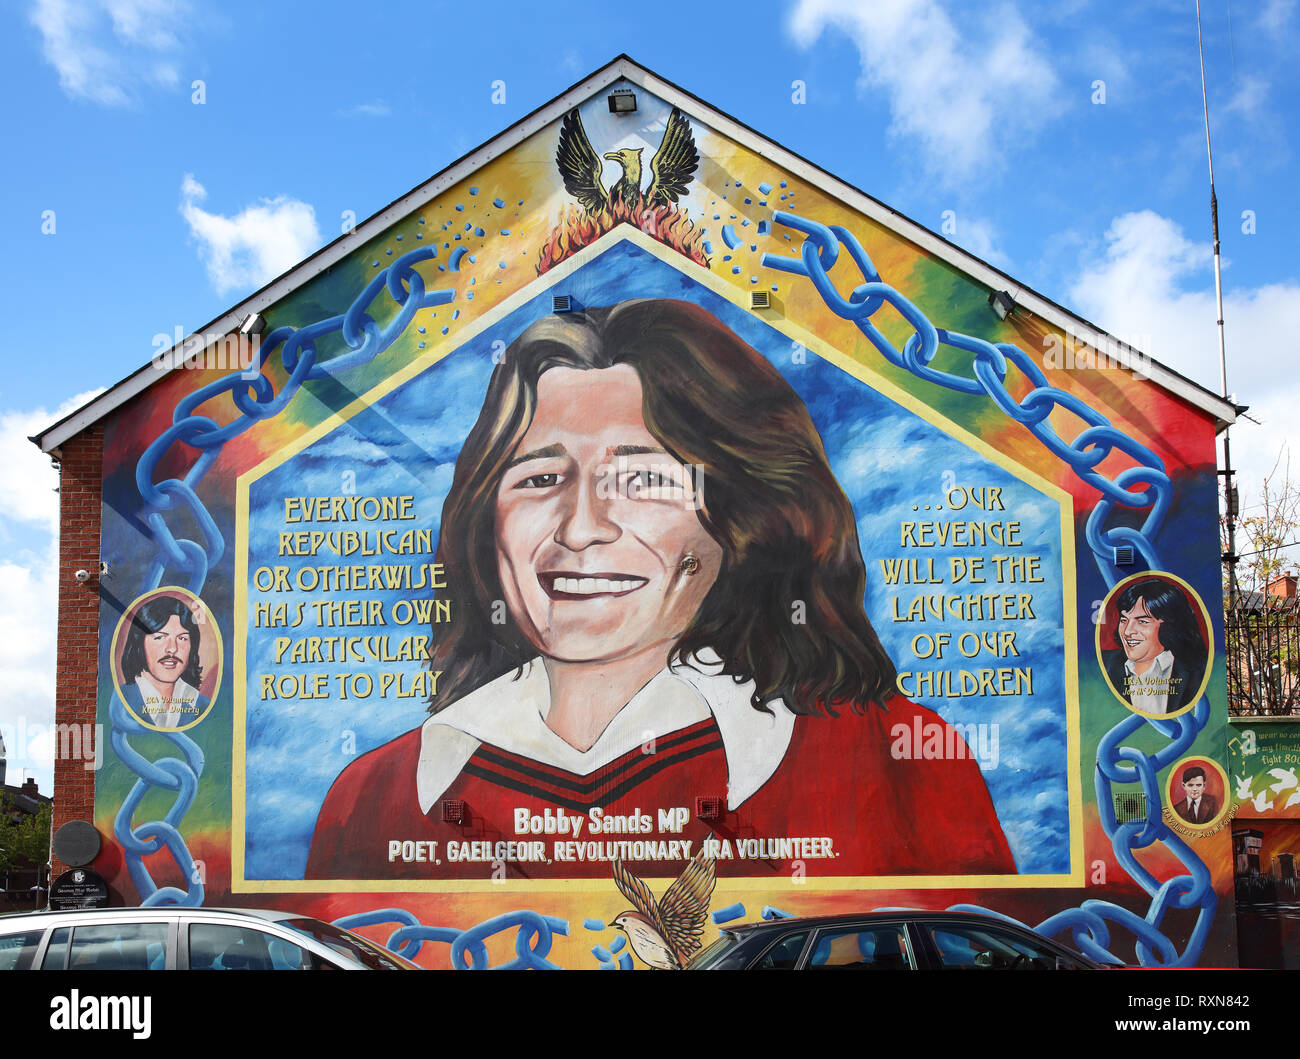 Mural dedicated to Bobby Sands, a volunteer with the Provisional IRA and leader of a hunger strike in 1981 that resulted in his death, Sinn Fein offices, corner of Falls and Sebastopol Roads, Belfast, Northern Island - Stock Image